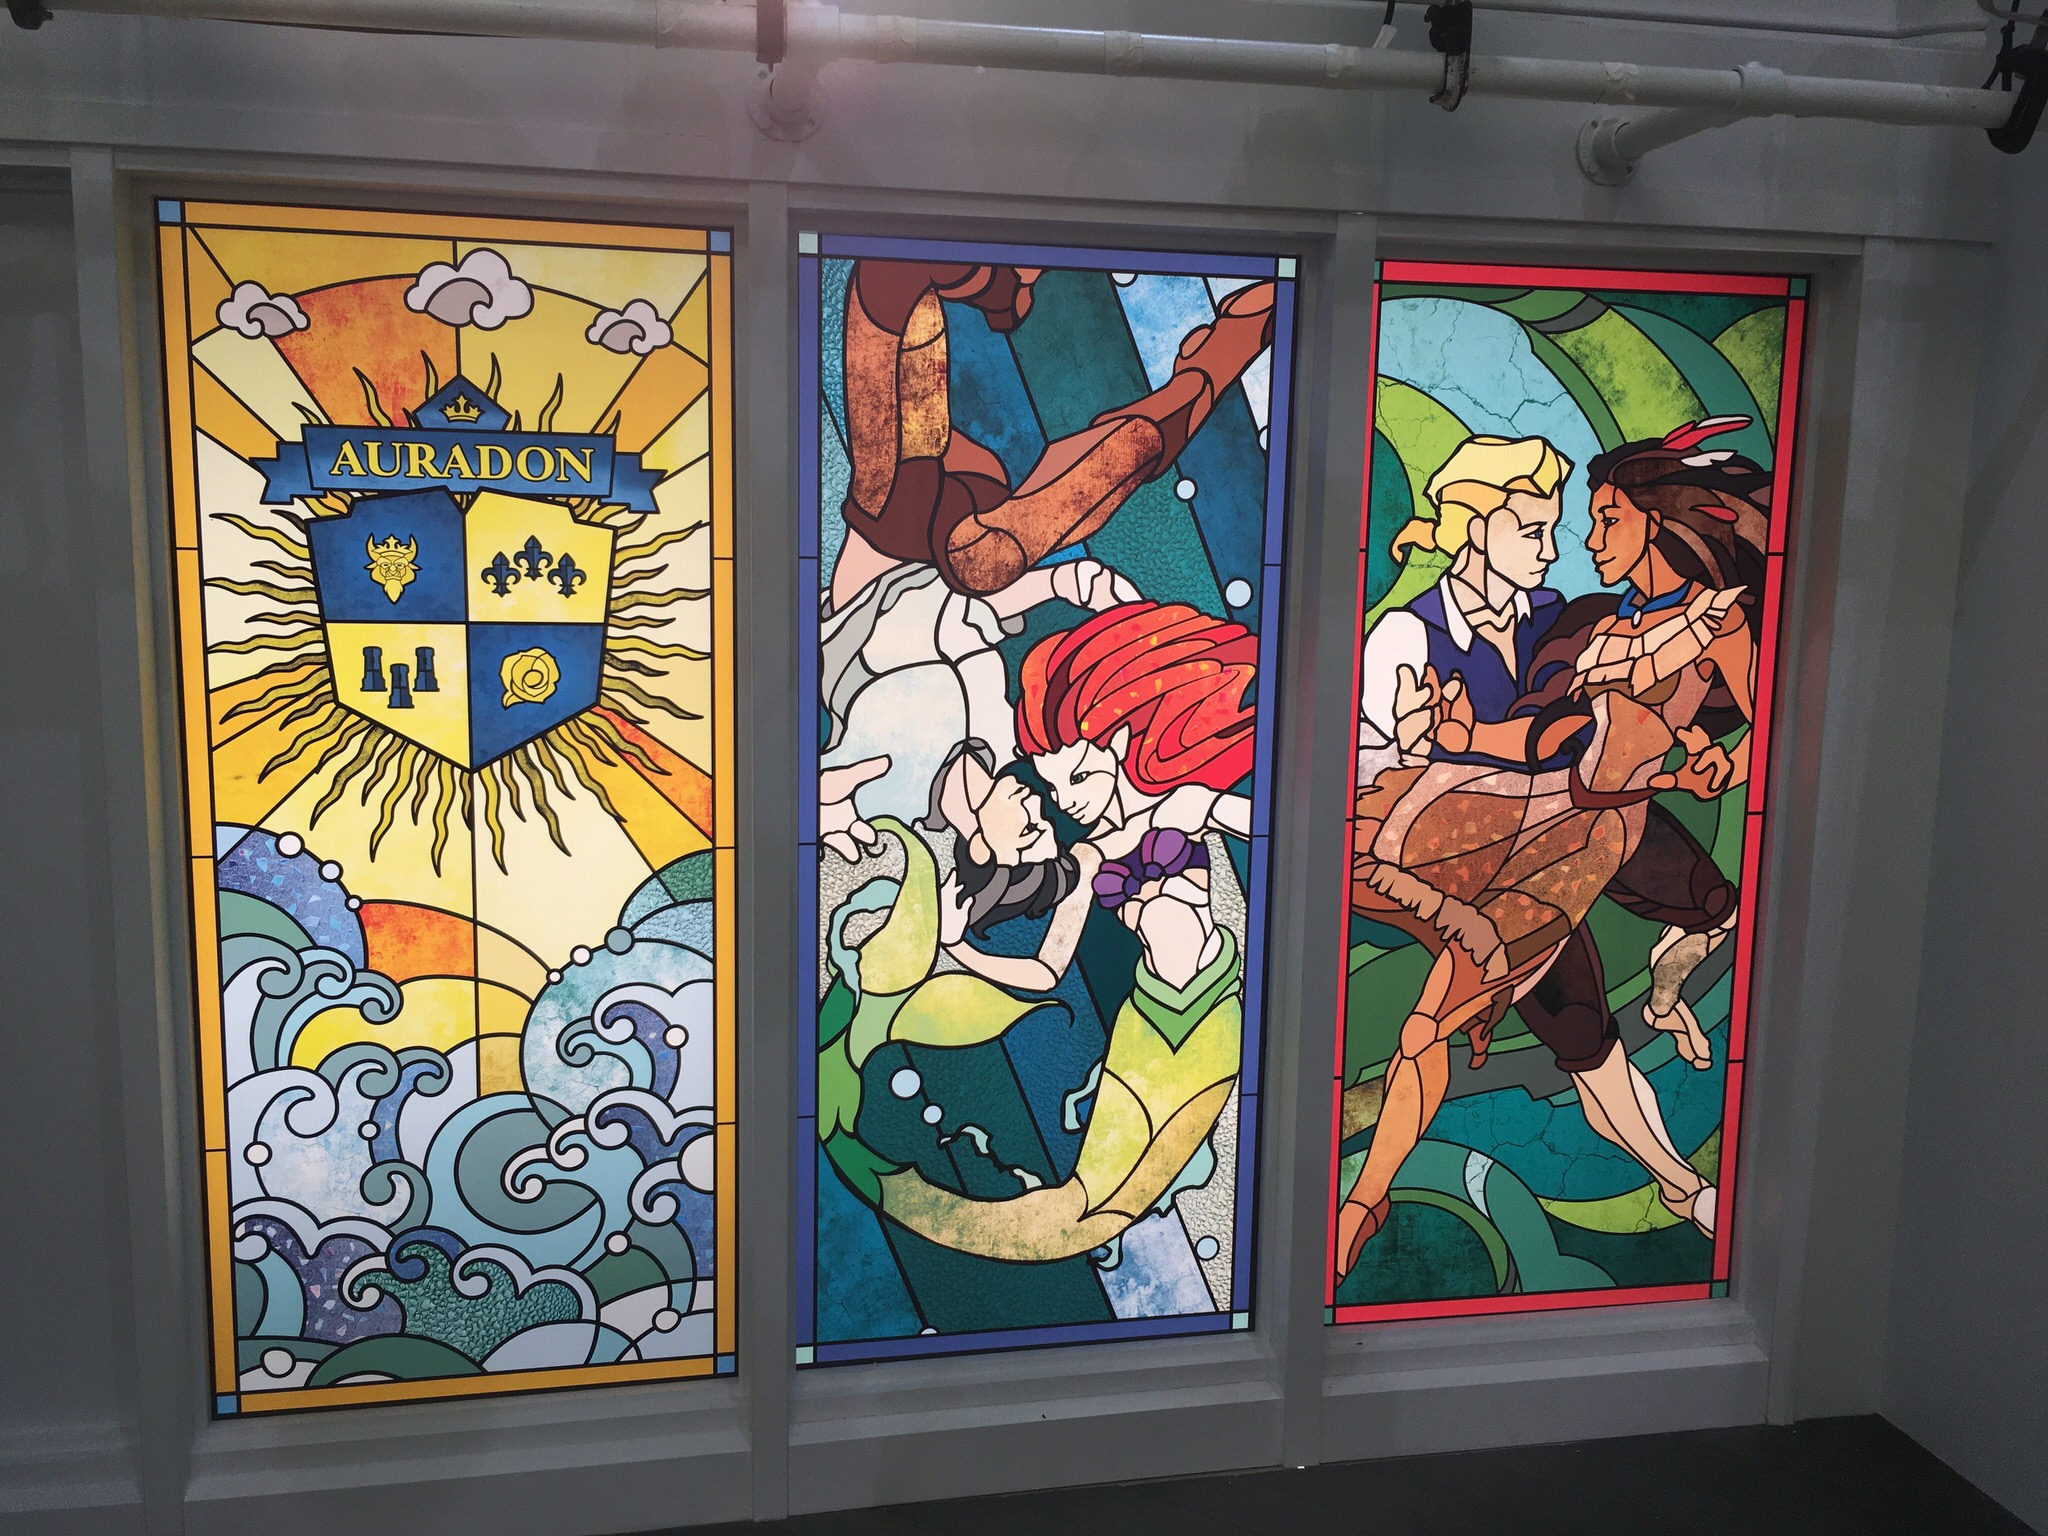 A detail of the stained glass windows on the yacht True Love, here celebrating The Little Mermaid and Pocahontas.